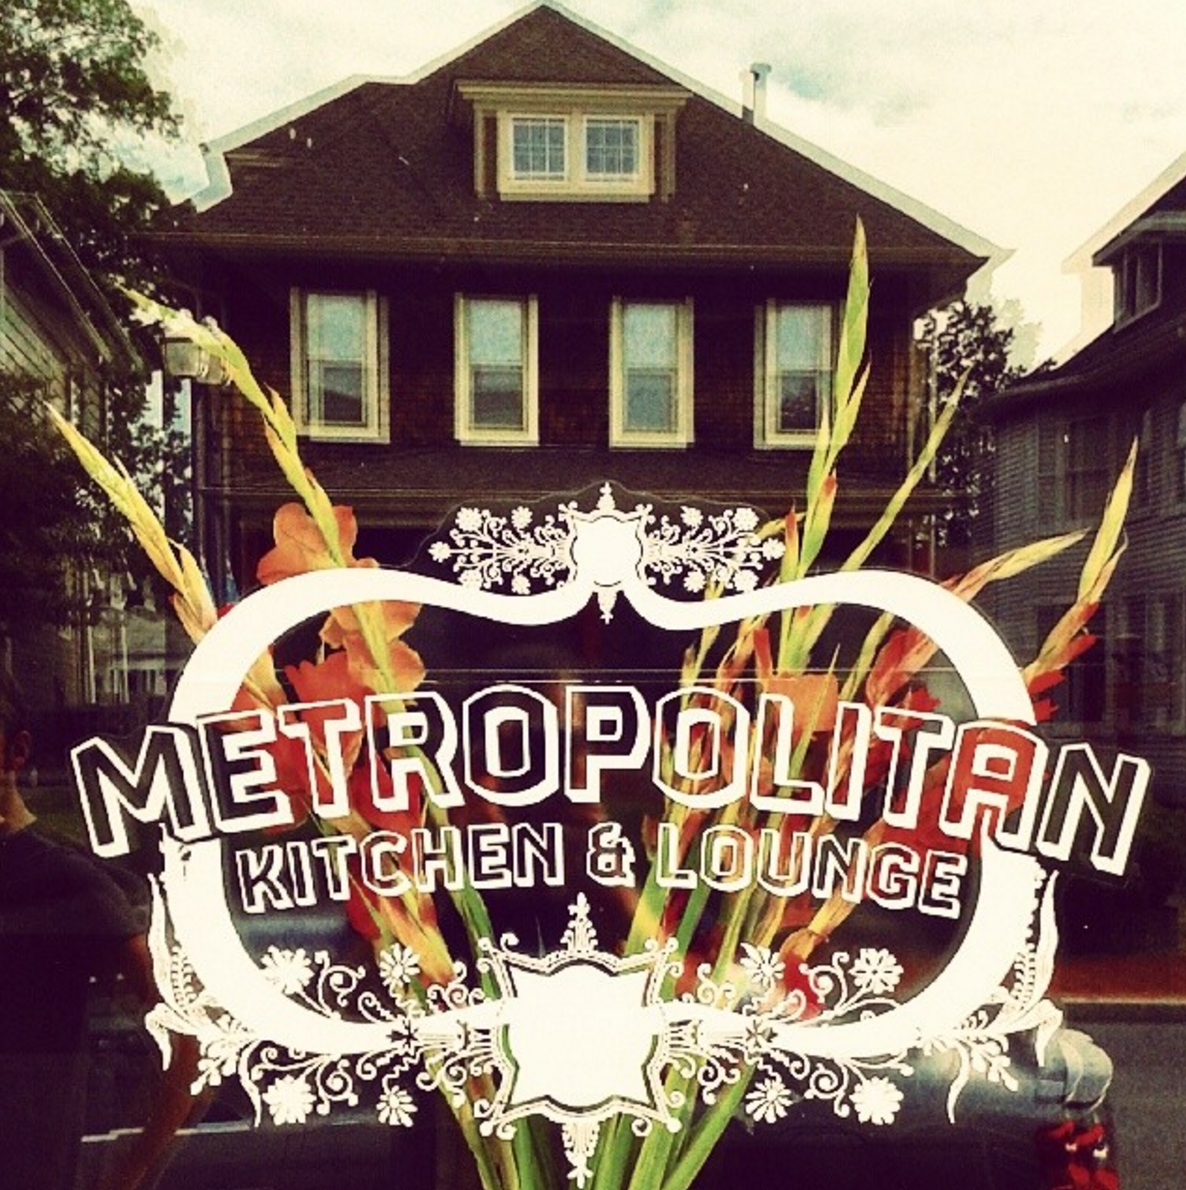 Metropolitan Kitchen & Lounge